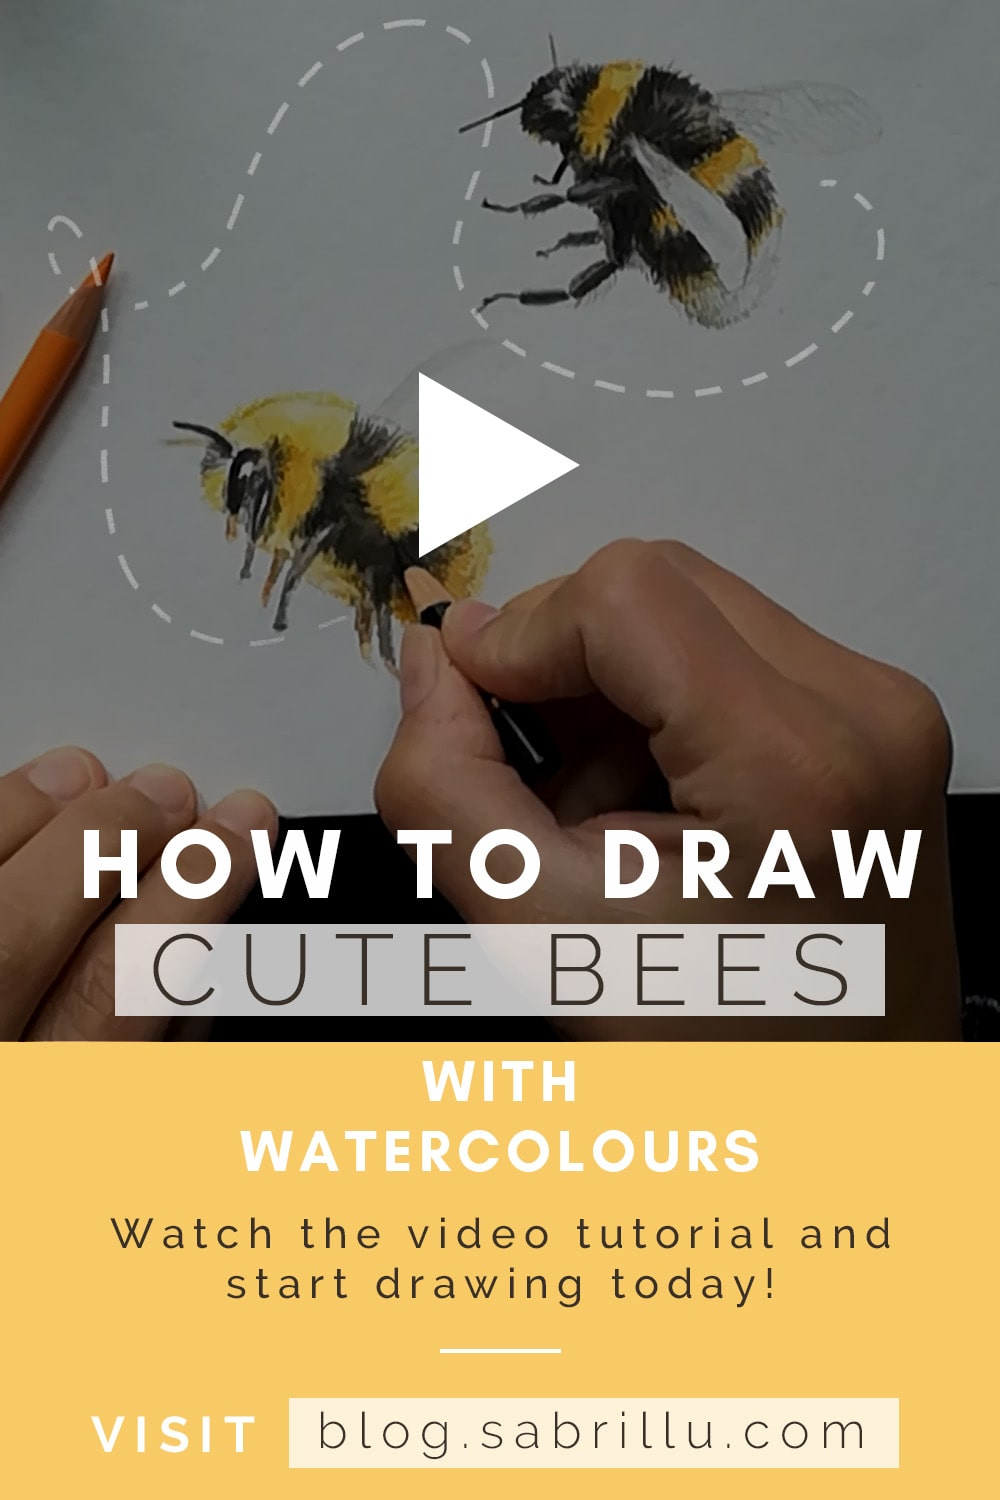 Draw bumble bees with watercolours Pinterest - Sabrillu